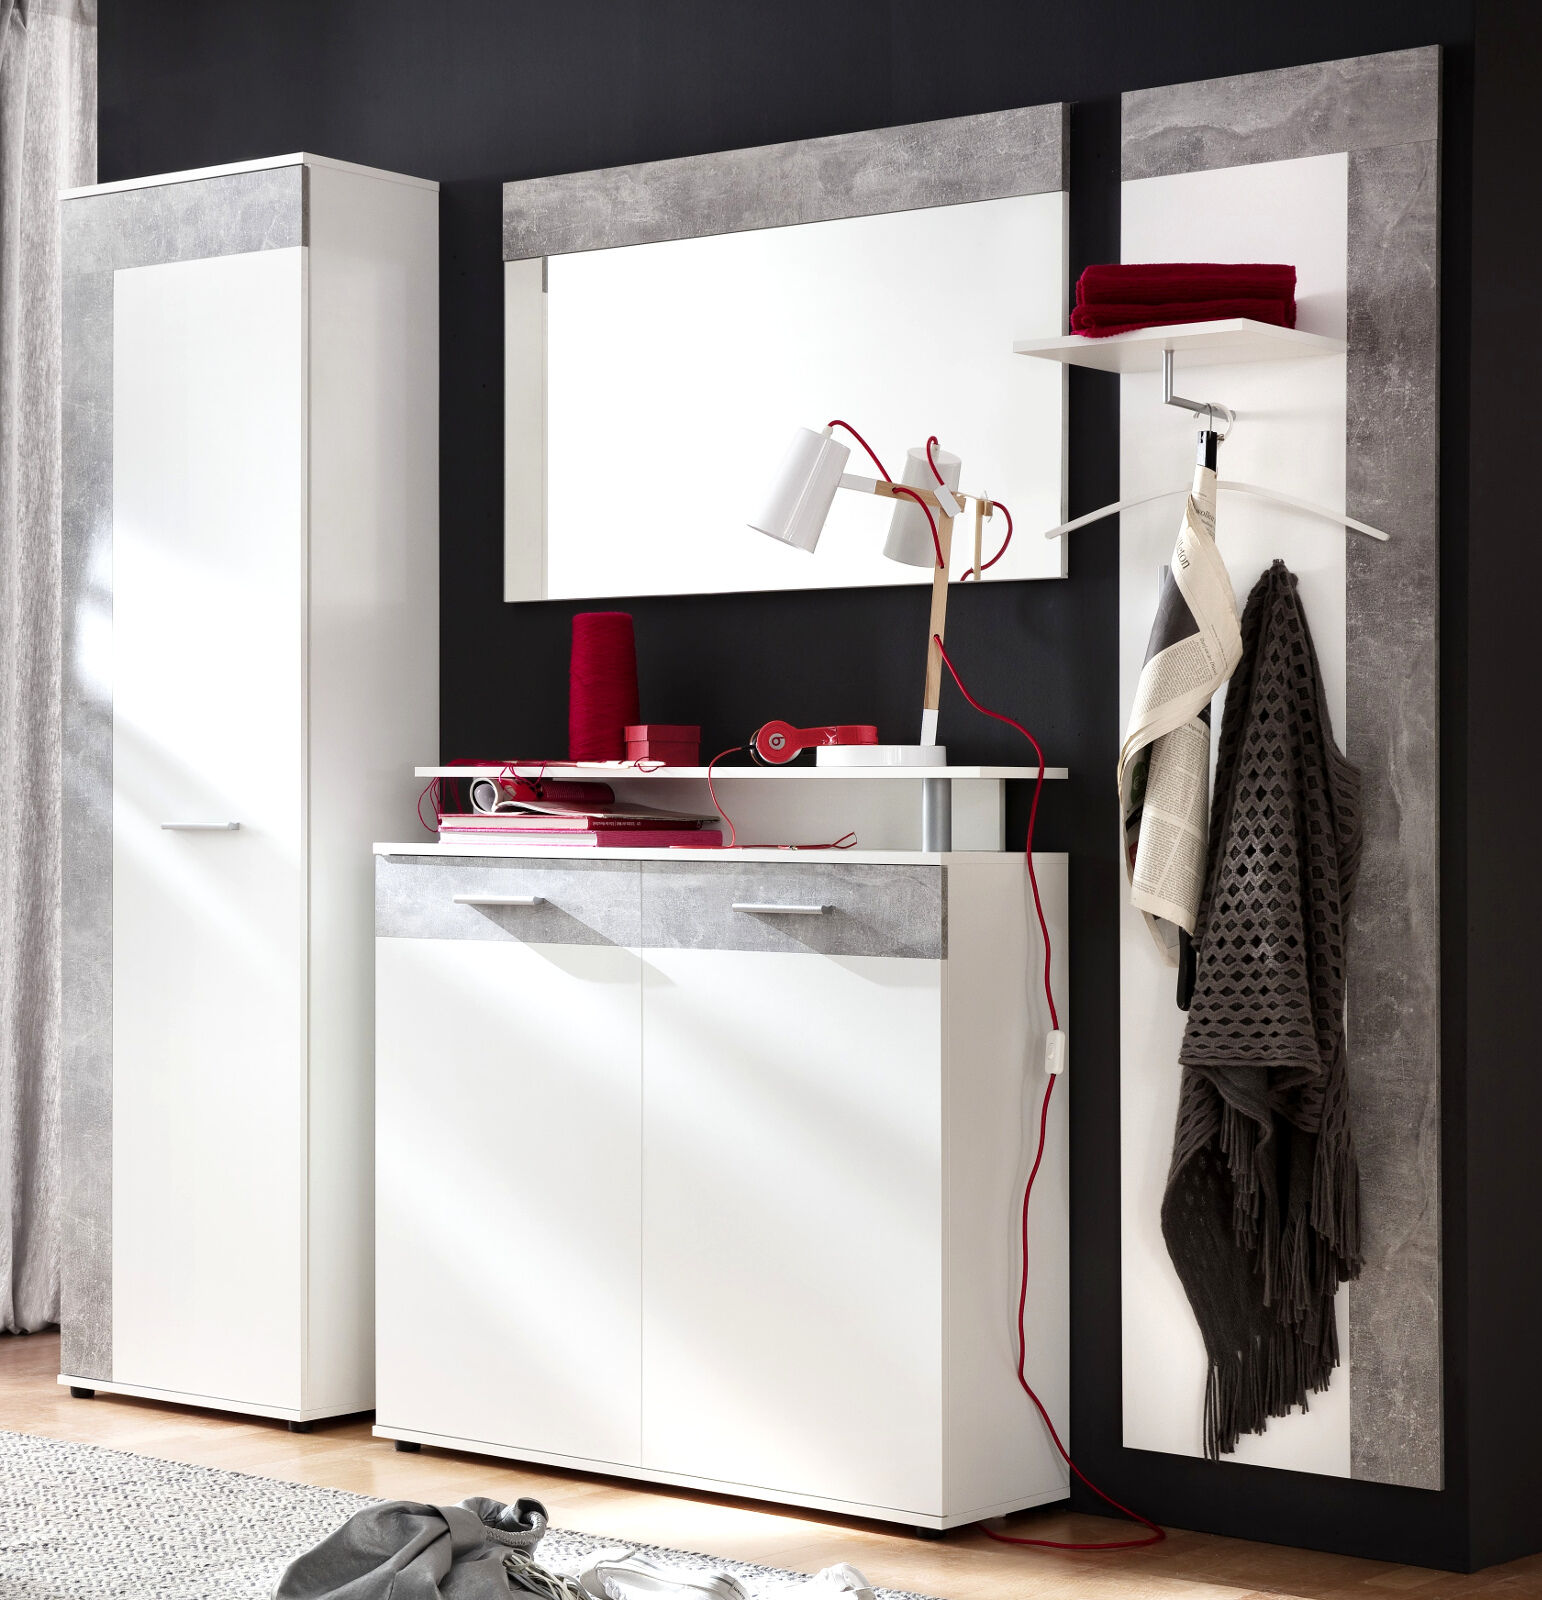 garderoben set flur garderobe wei grau beton stone 4 tlg mit schrank m bel jack eur 349 99. Black Bedroom Furniture Sets. Home Design Ideas